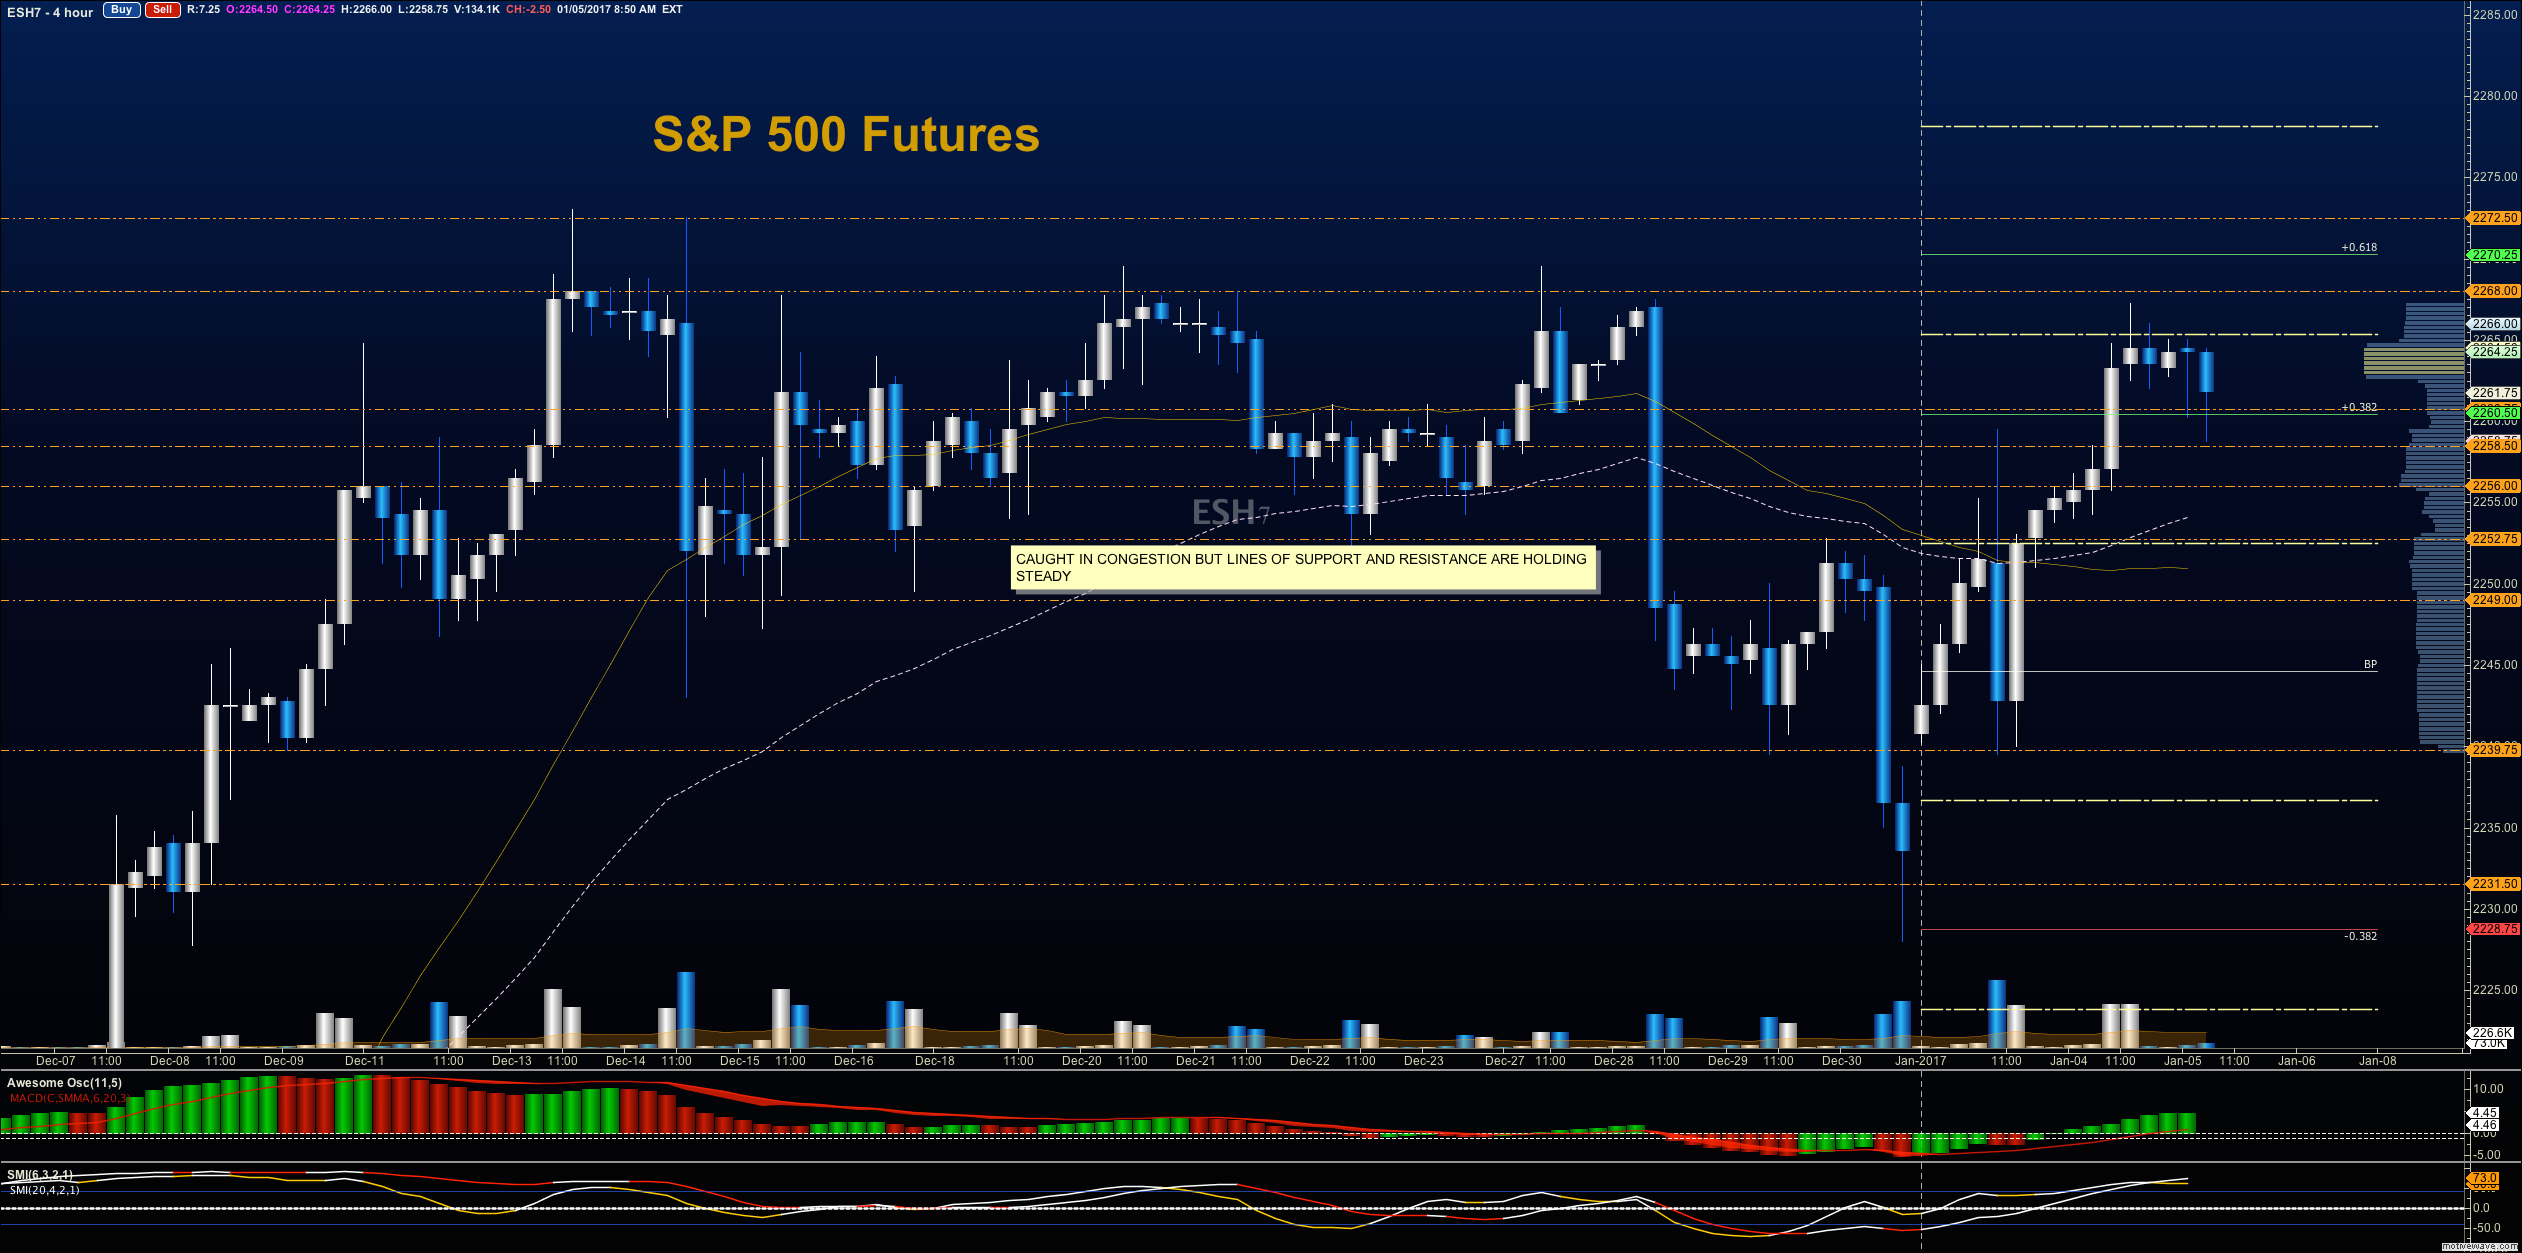 s&p 500 futures trading chart analysis january 5